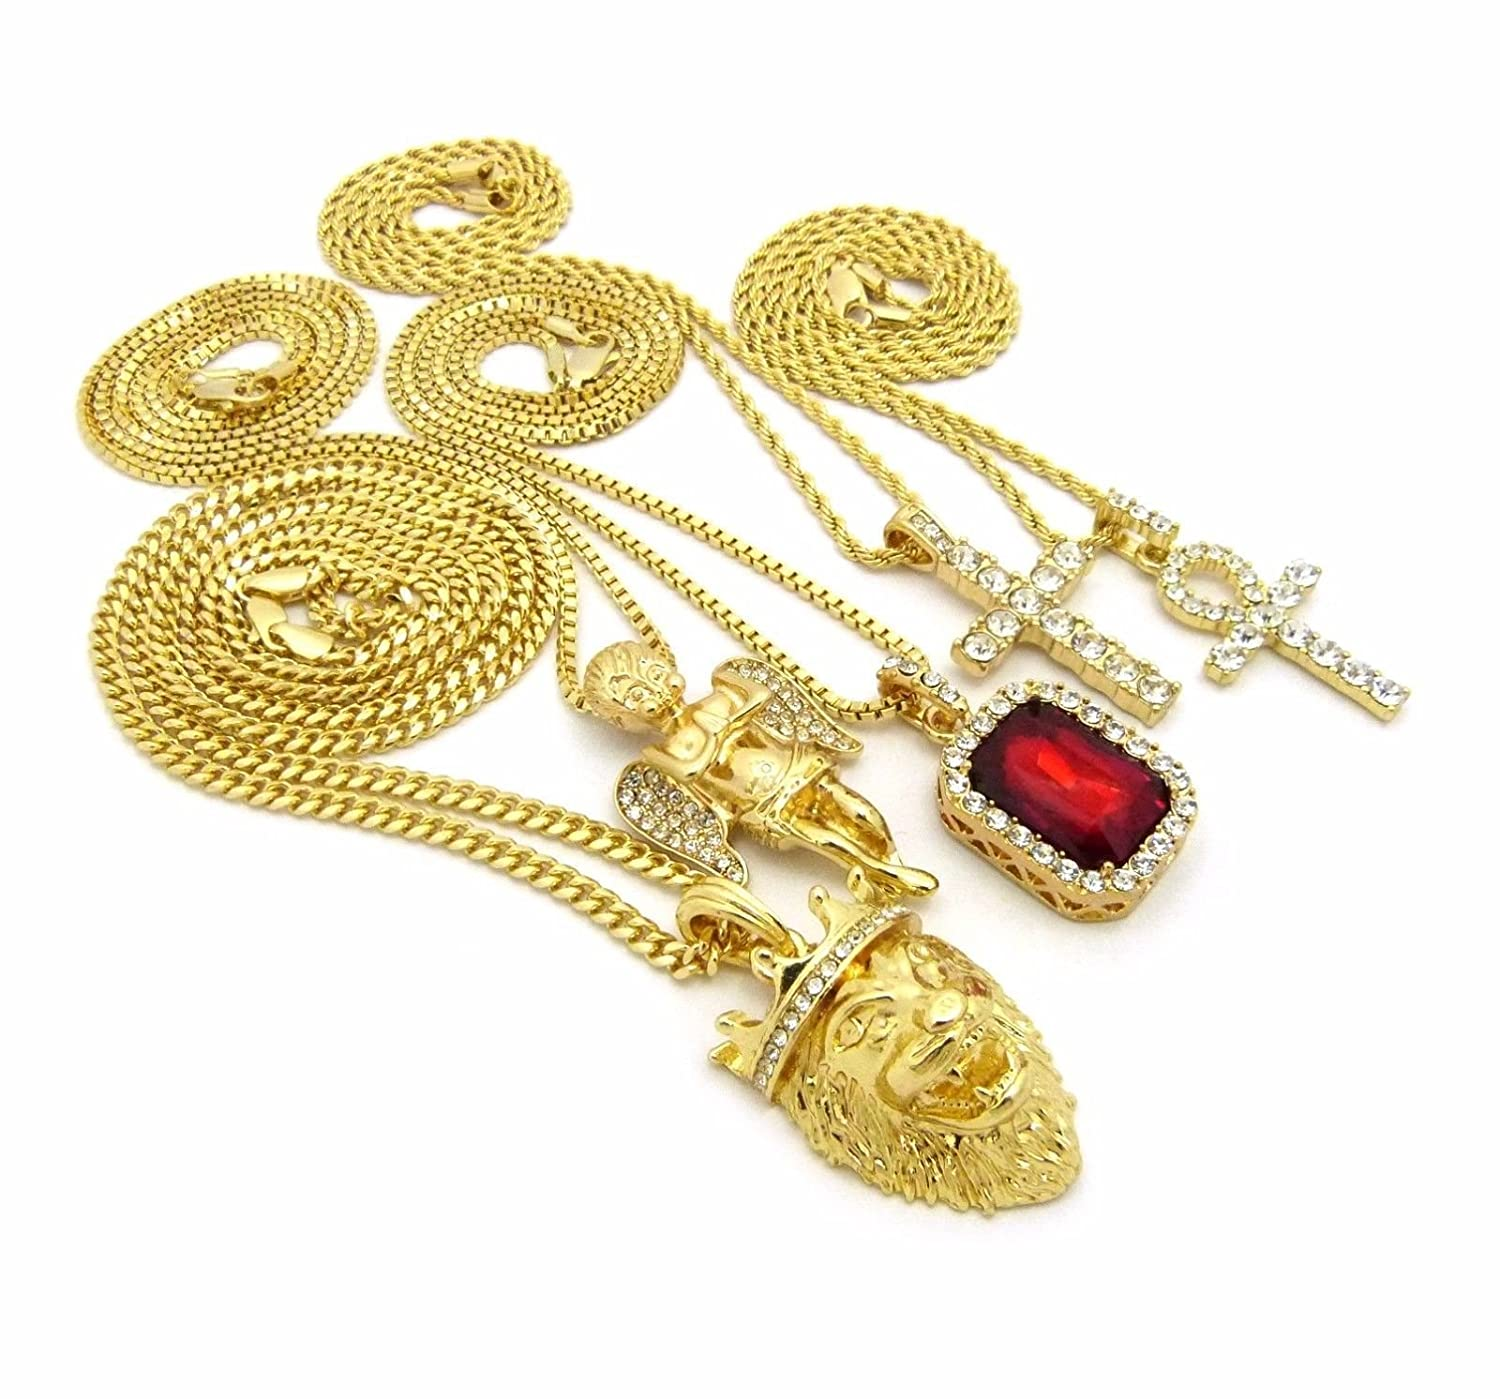 Shiny Jewelers USA Mens ICED Out King Lion Angel,GEM RED Ruby Stone ANKH Cross Box Cuban Chain Necklace Set of 5